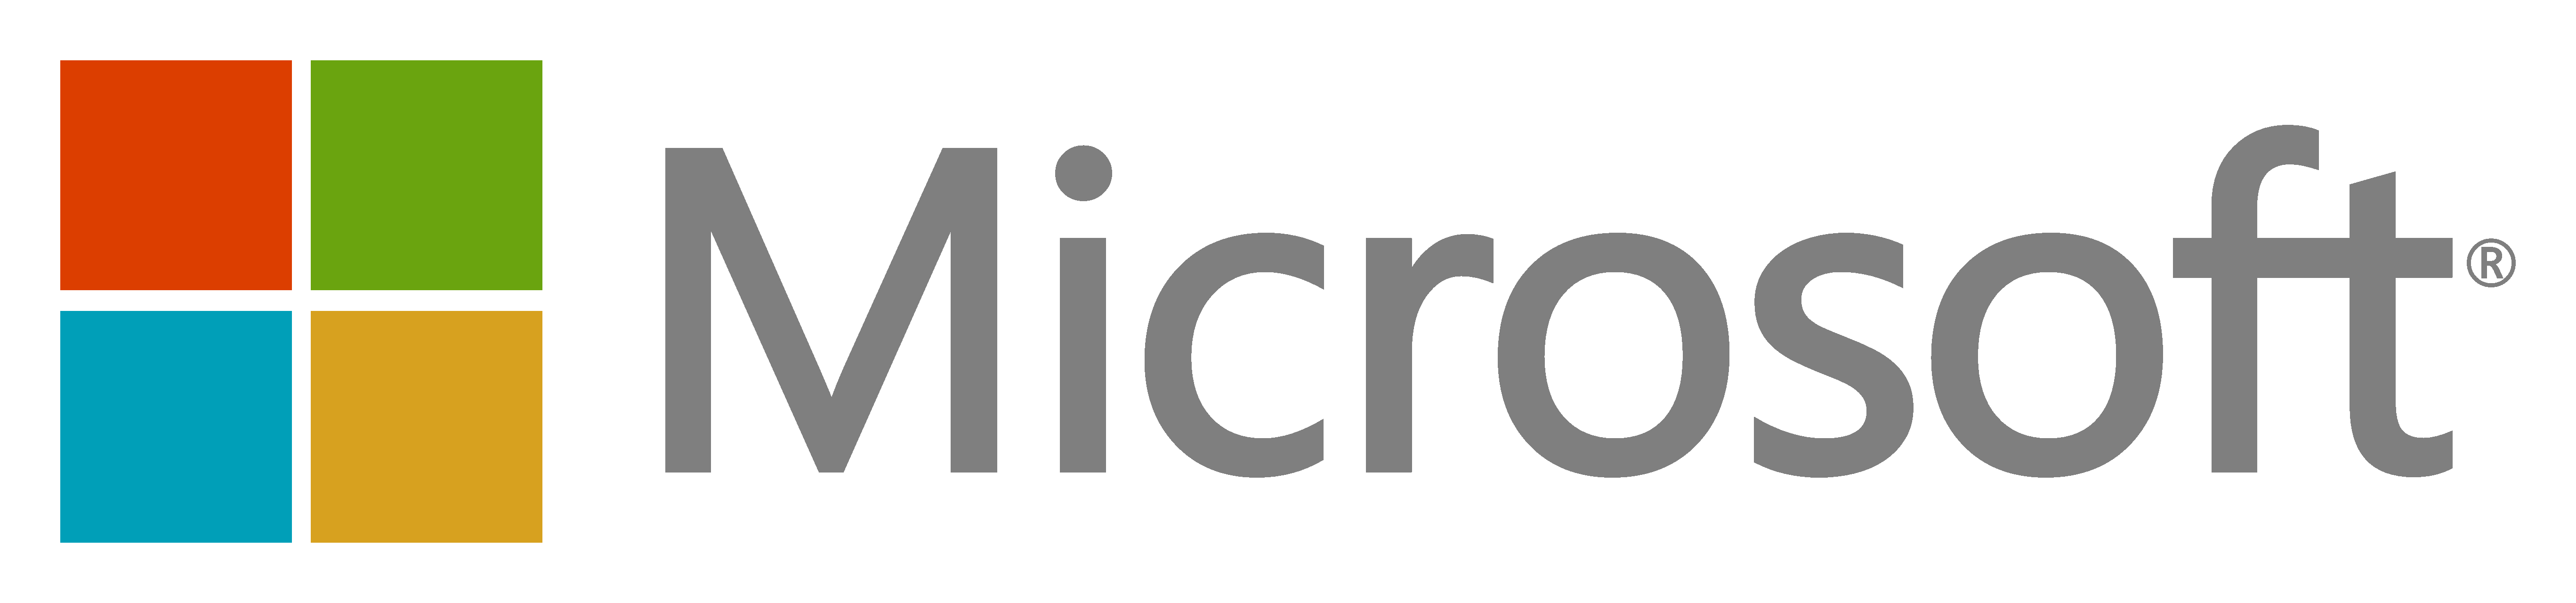 image microsoft logo png   v   s recommended games wiki computer use guidelines in classrooms computer user guide for beginners